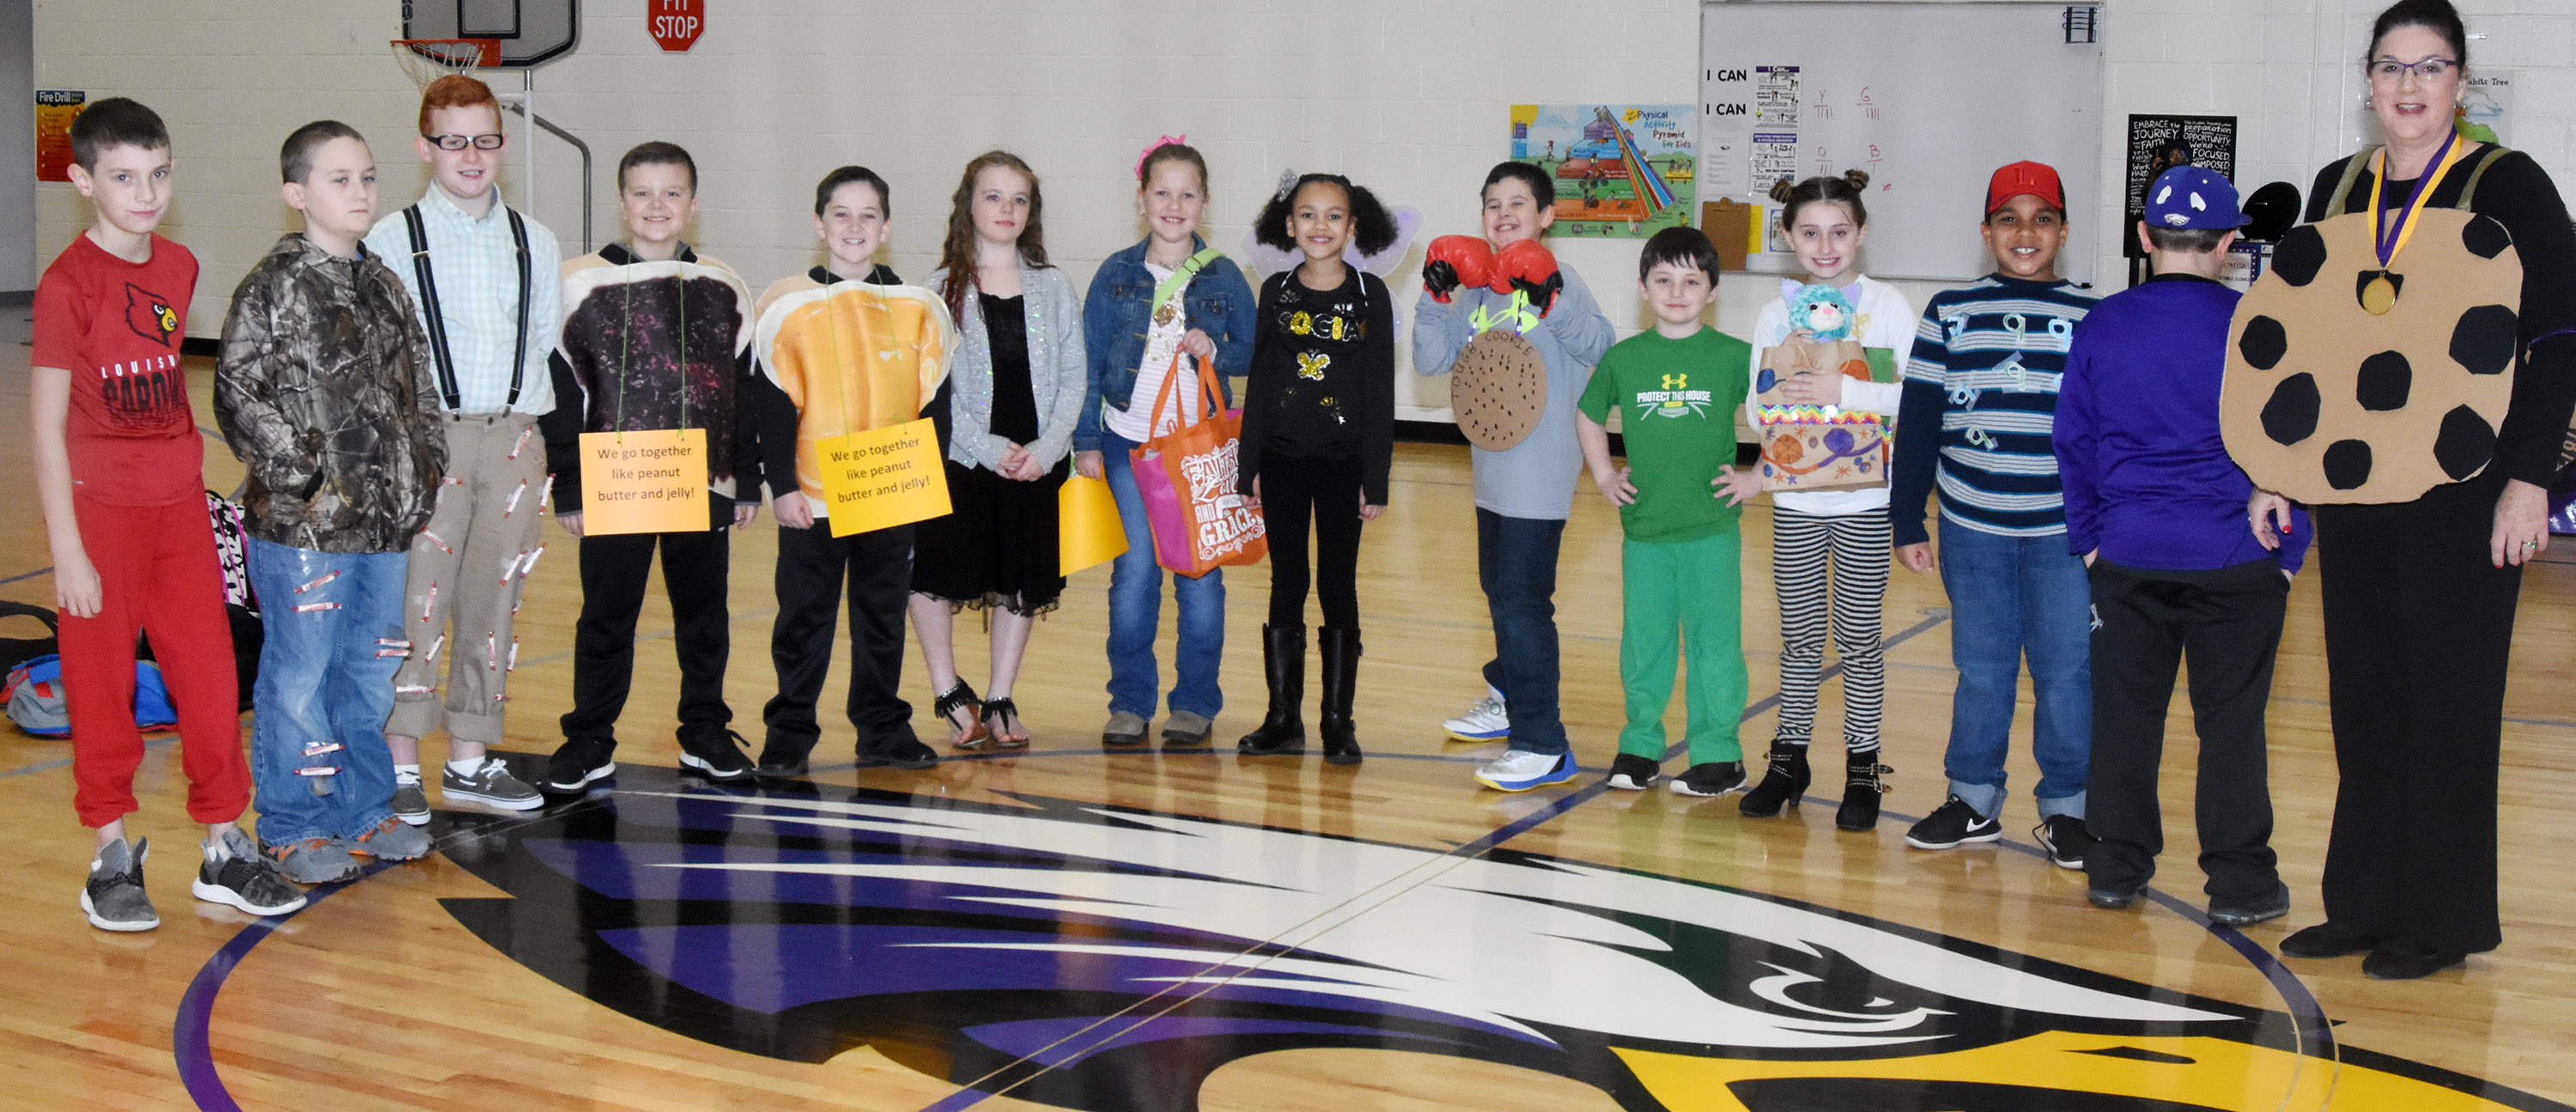 CES third-graders in Patty Haley's class dress to represent their favorite idioms. From left are Aidan Wilson, Carson Ford, Reece Swafford, Cayton Lawhorn, Luke Adkins, Cayleigh Underwood, Madison South, Alexia Howard, Damien Clark, Codey Parks, Cadence Burton, Zaemar Hoskins, Hayden Maupin and teacher Patty Haley.